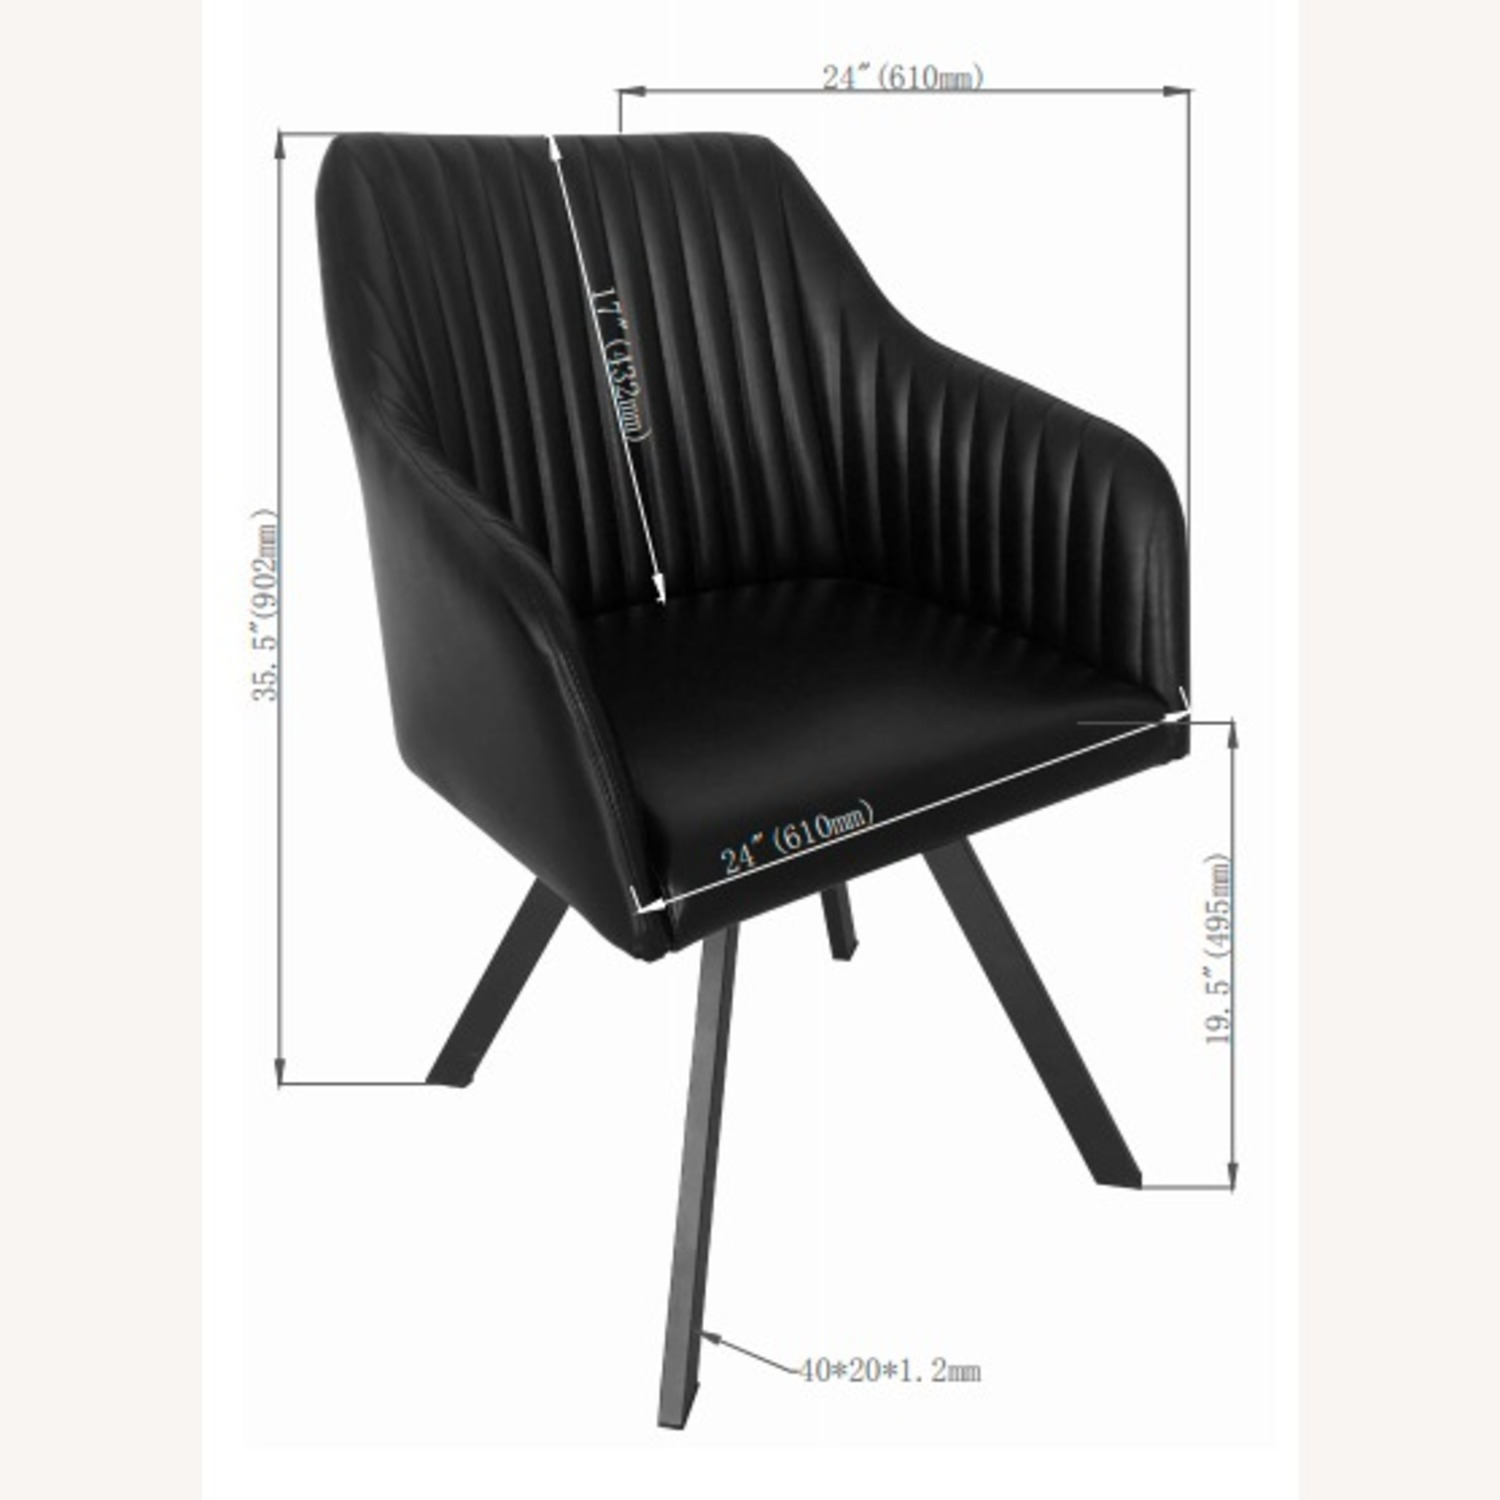 Swivel Dining Chair In Black Leatherette Finish - image-3